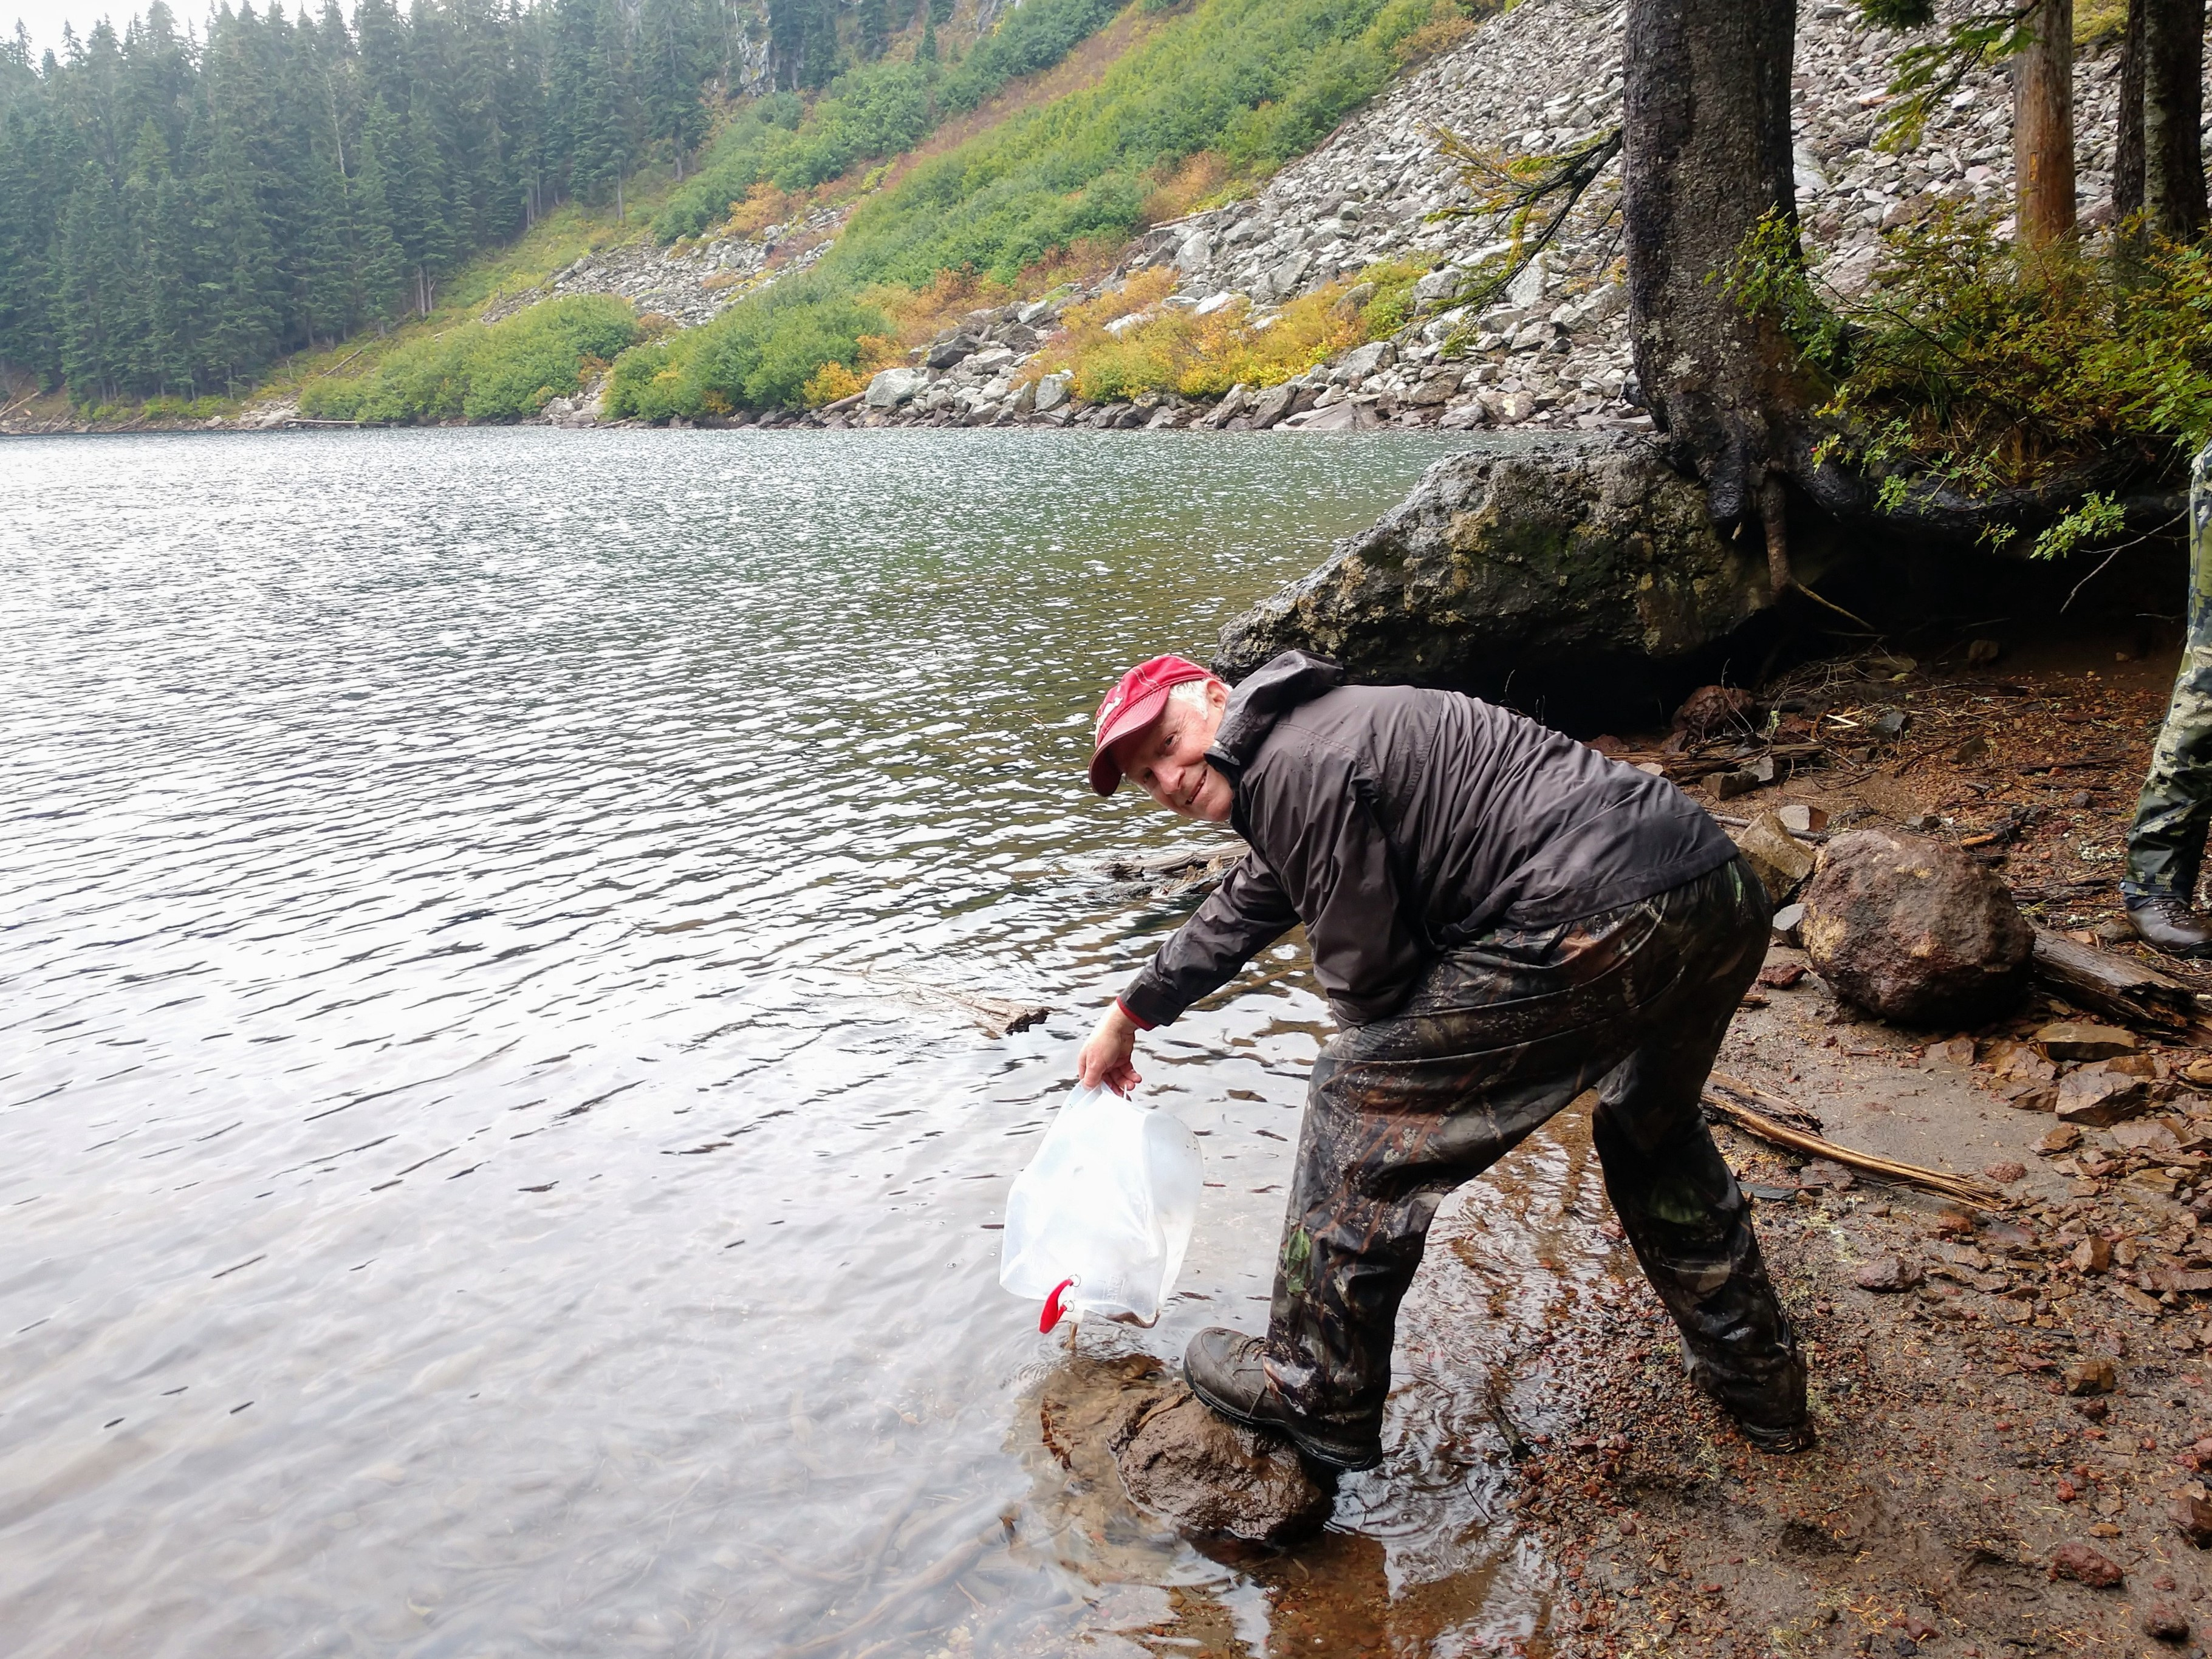 Man wearing rain gear pouring water and trout fry from a bag into the lake.